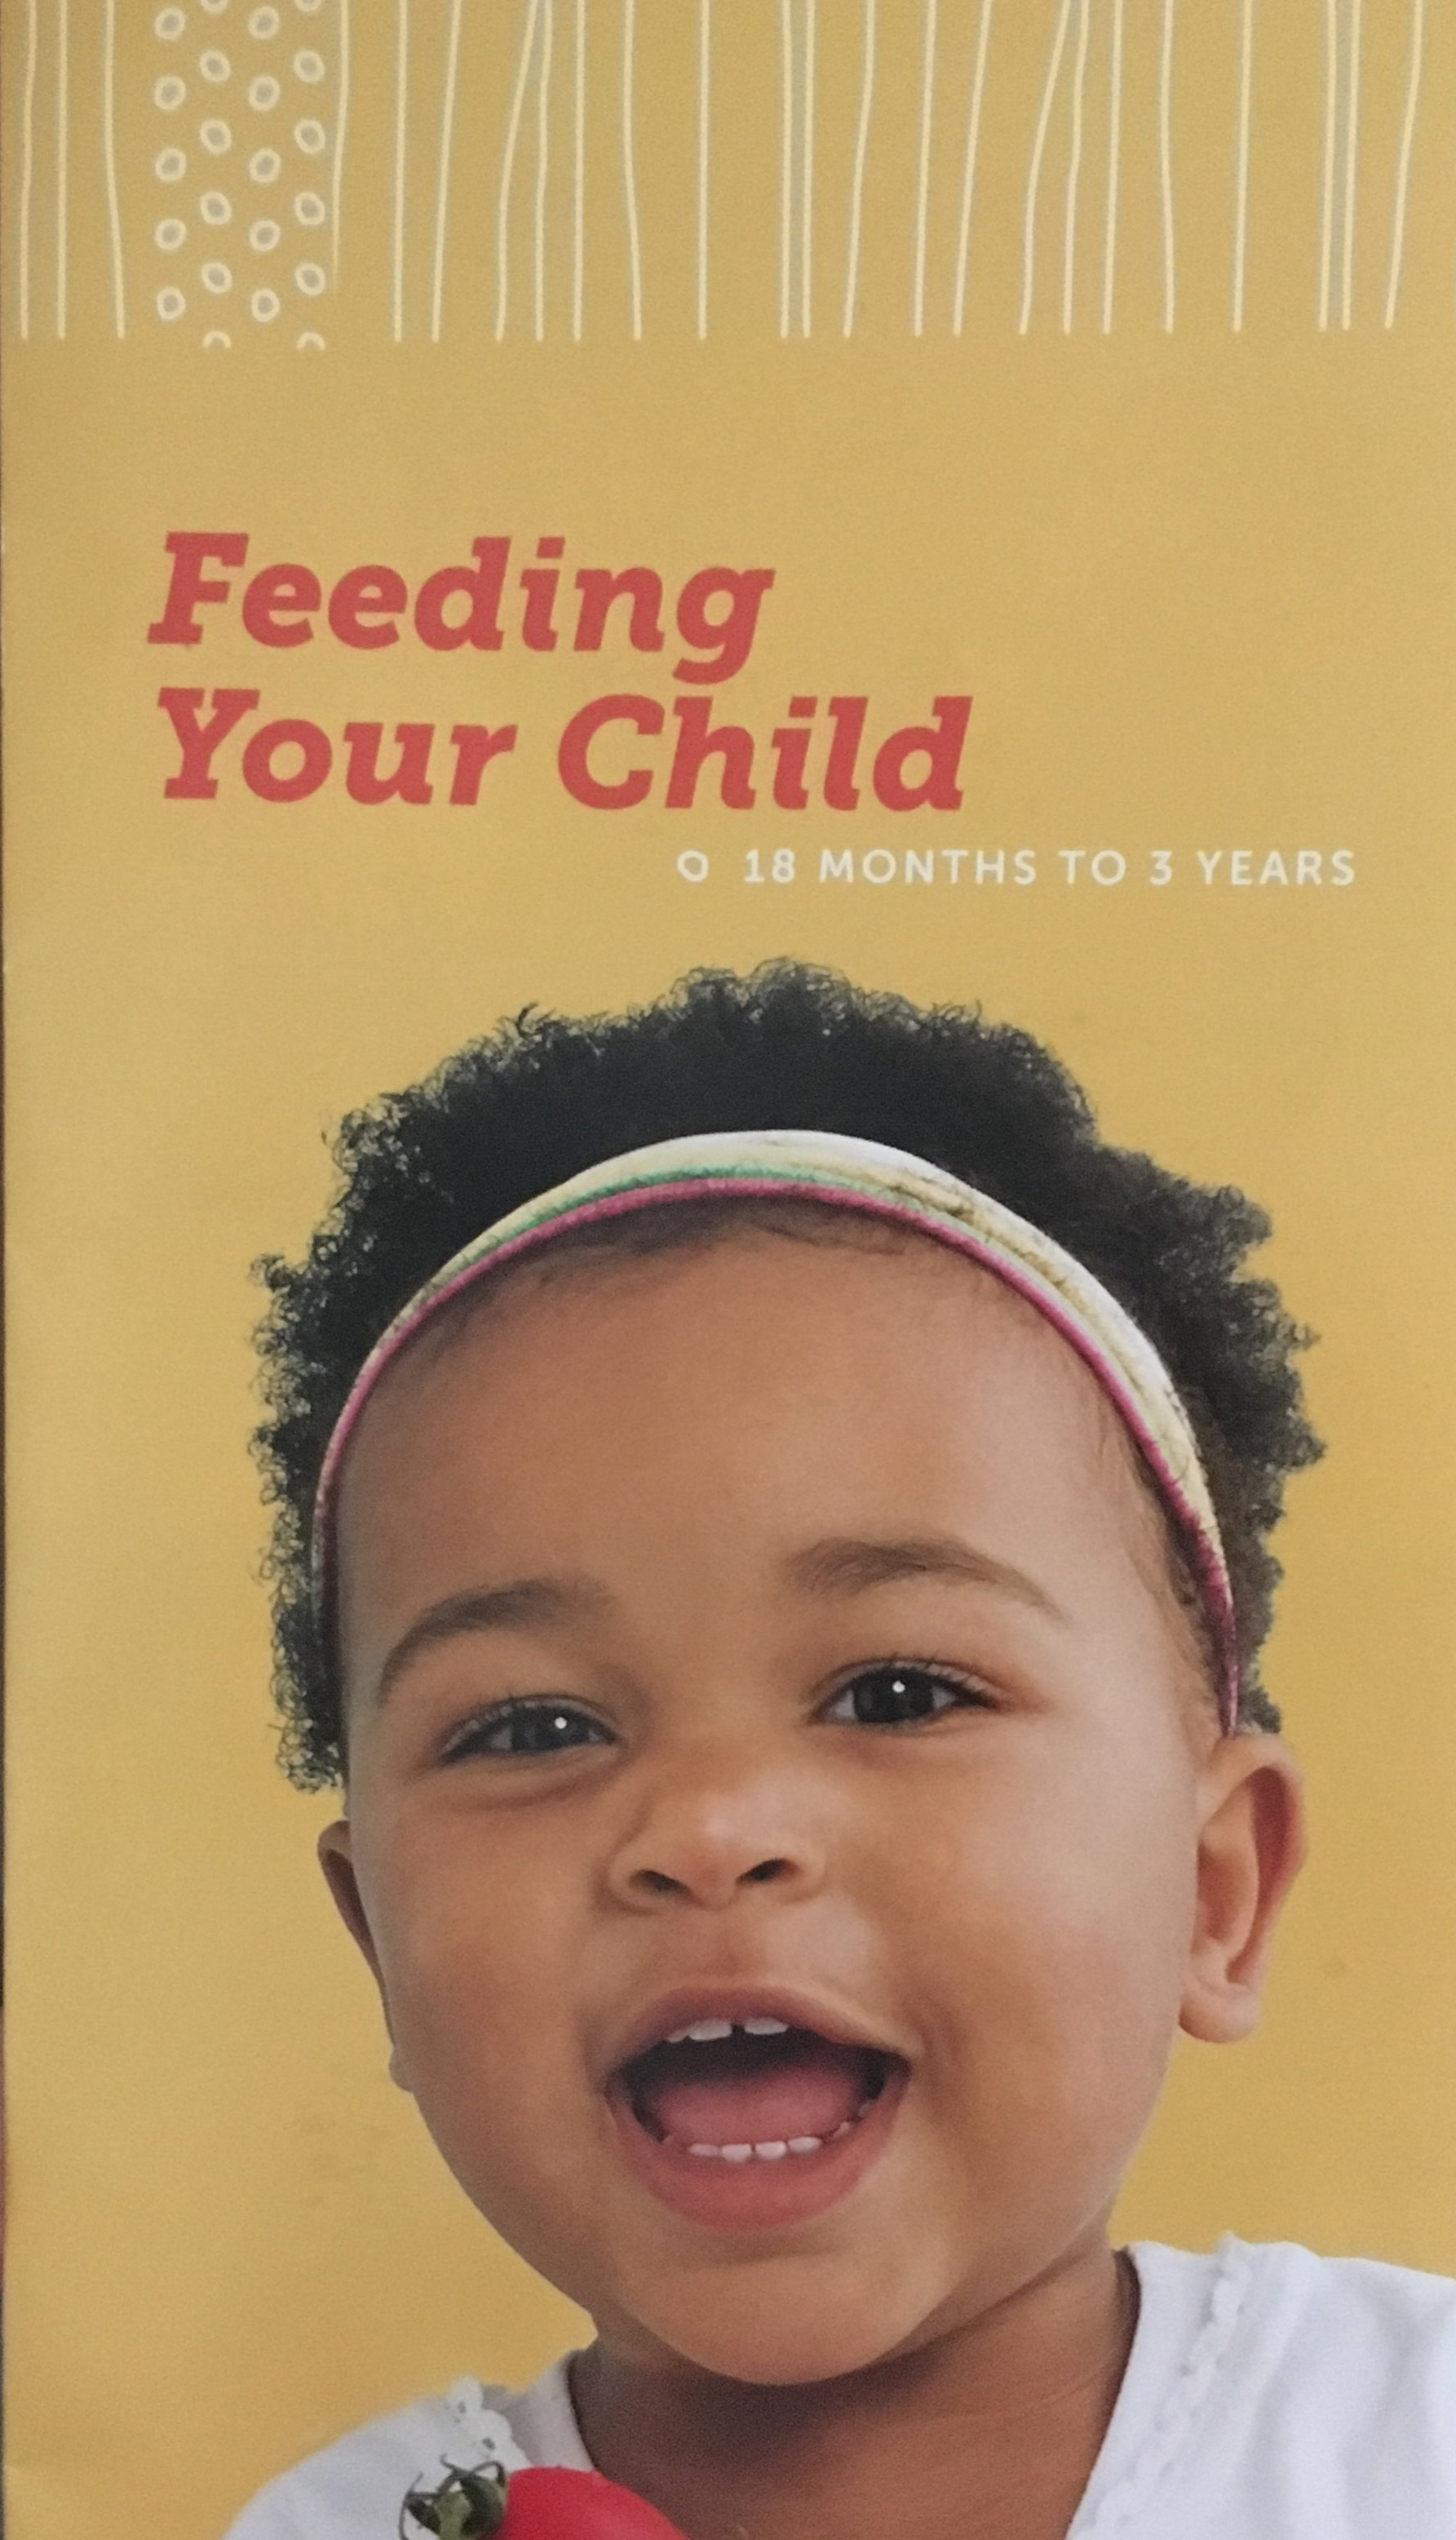 feedingyourchild